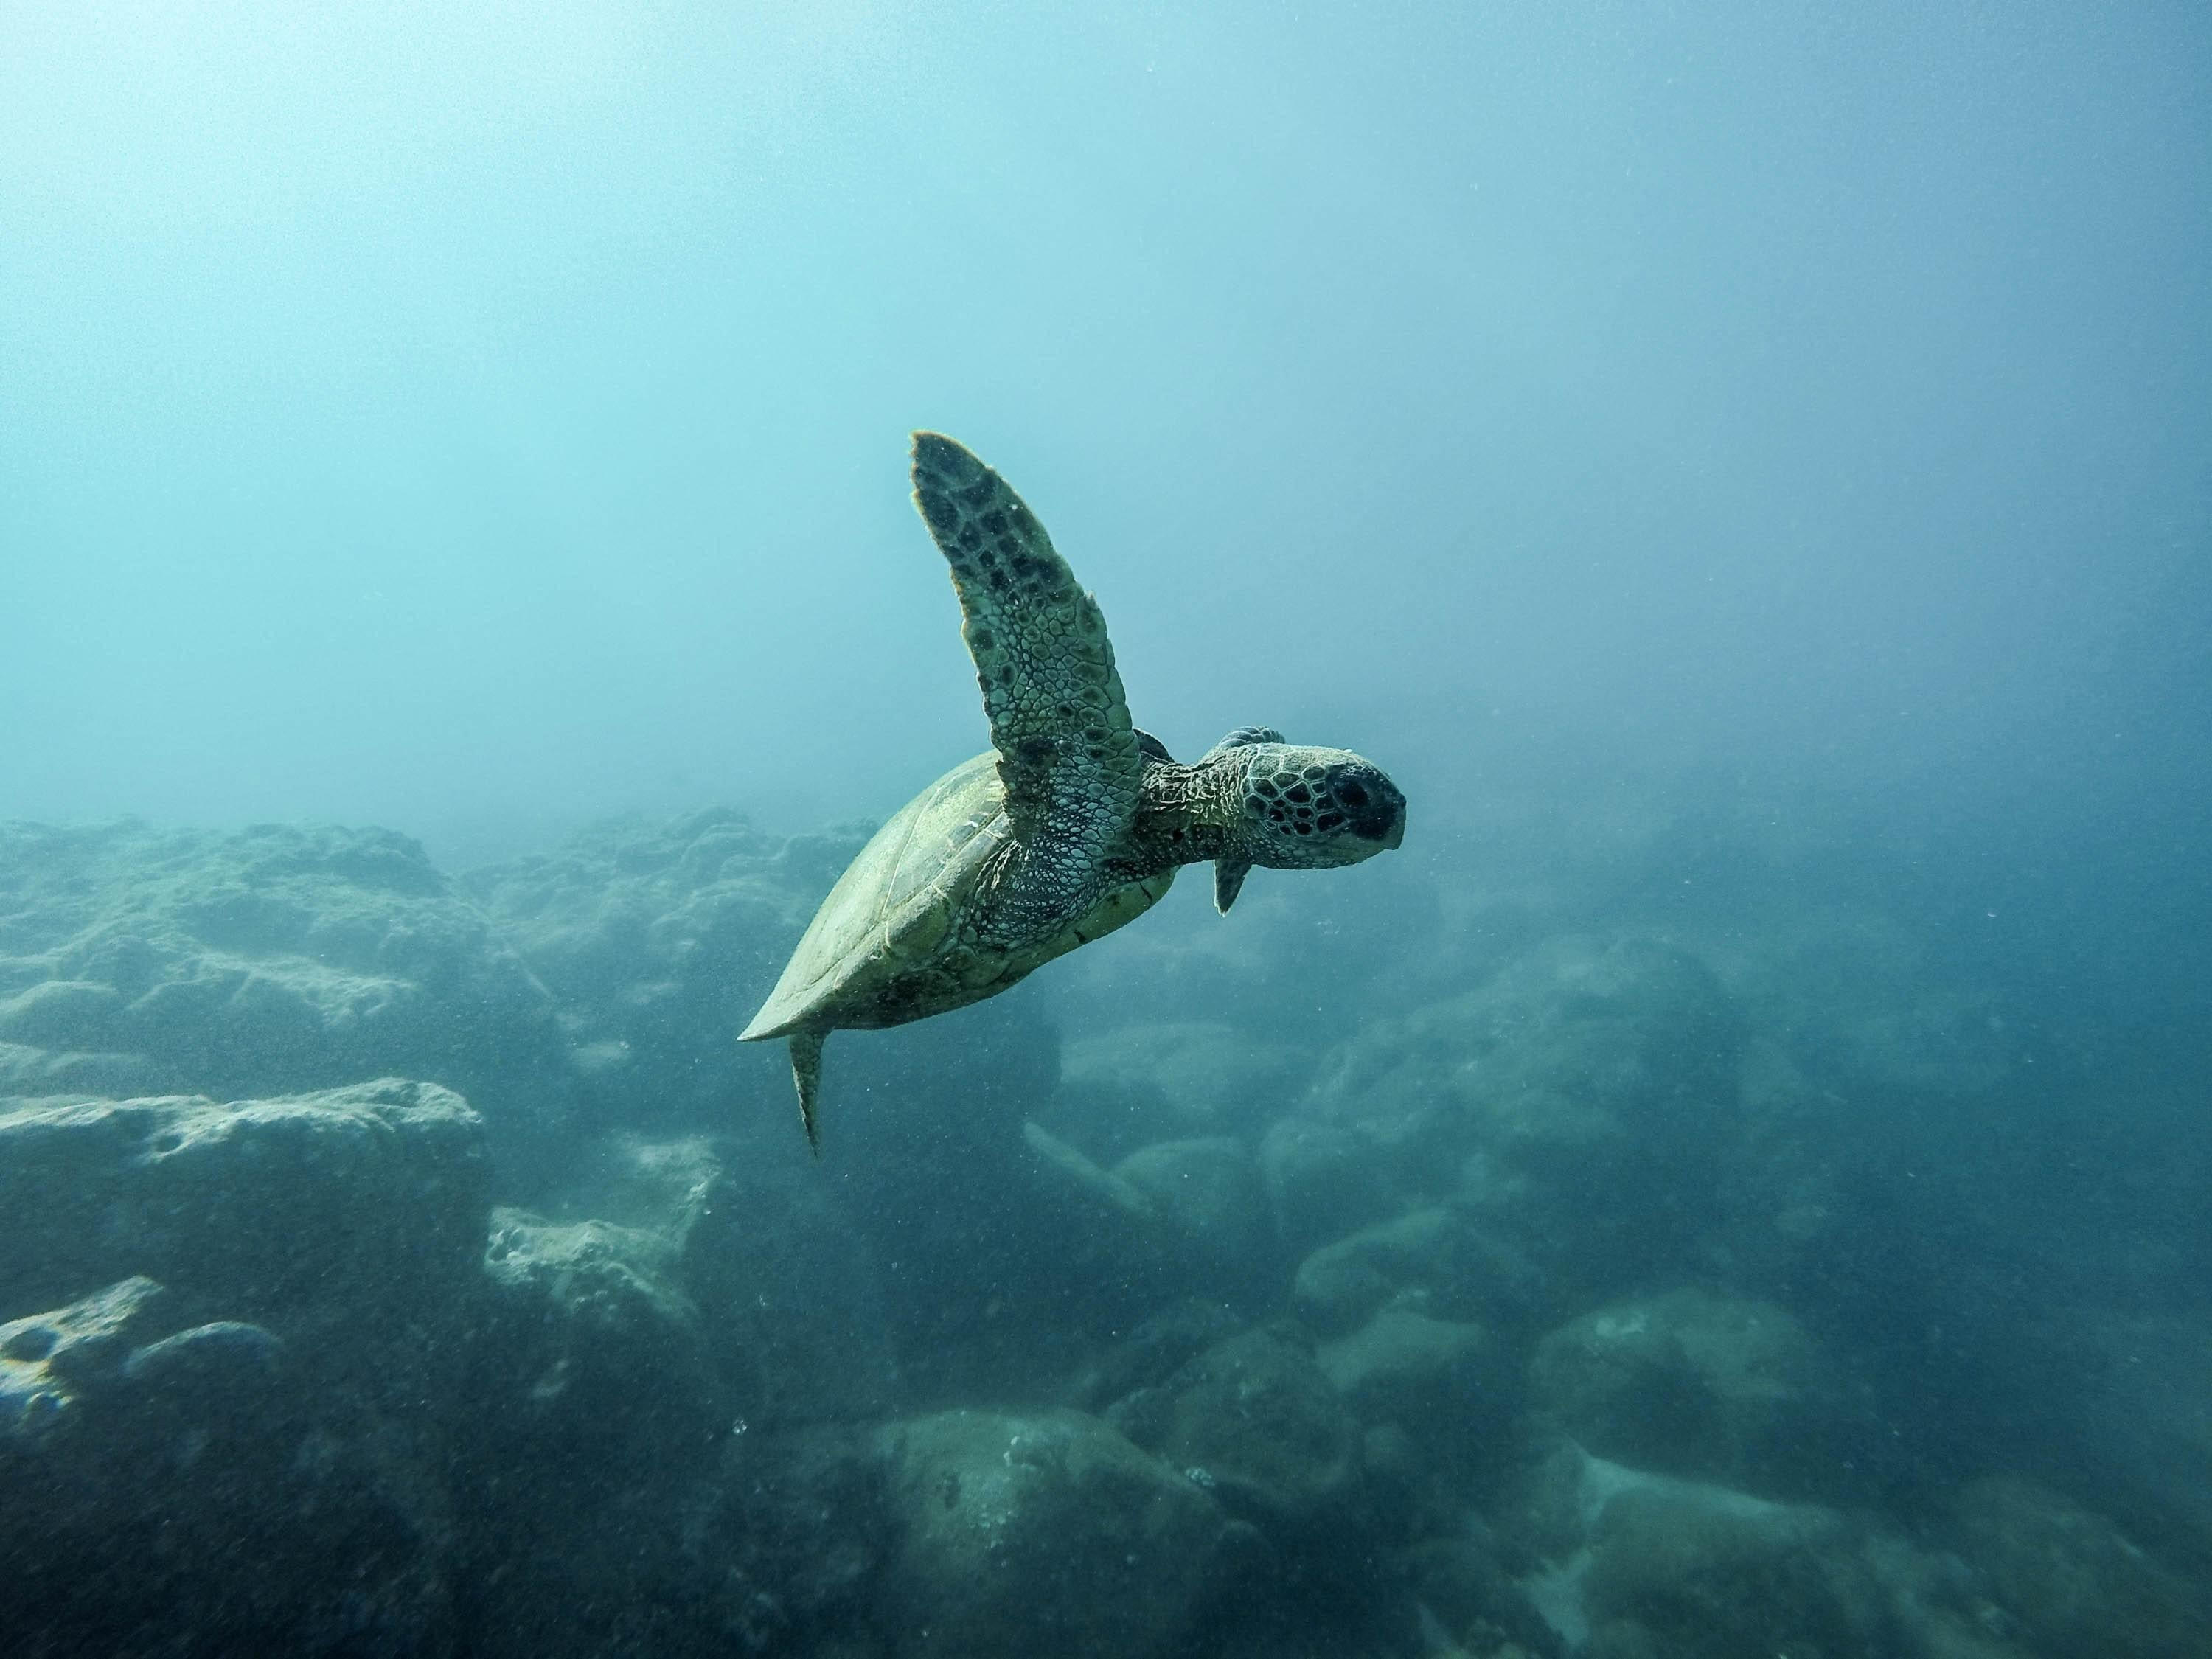 Baby sea turtles, such as this one, are suffering as a result of ocean plastic pollution.